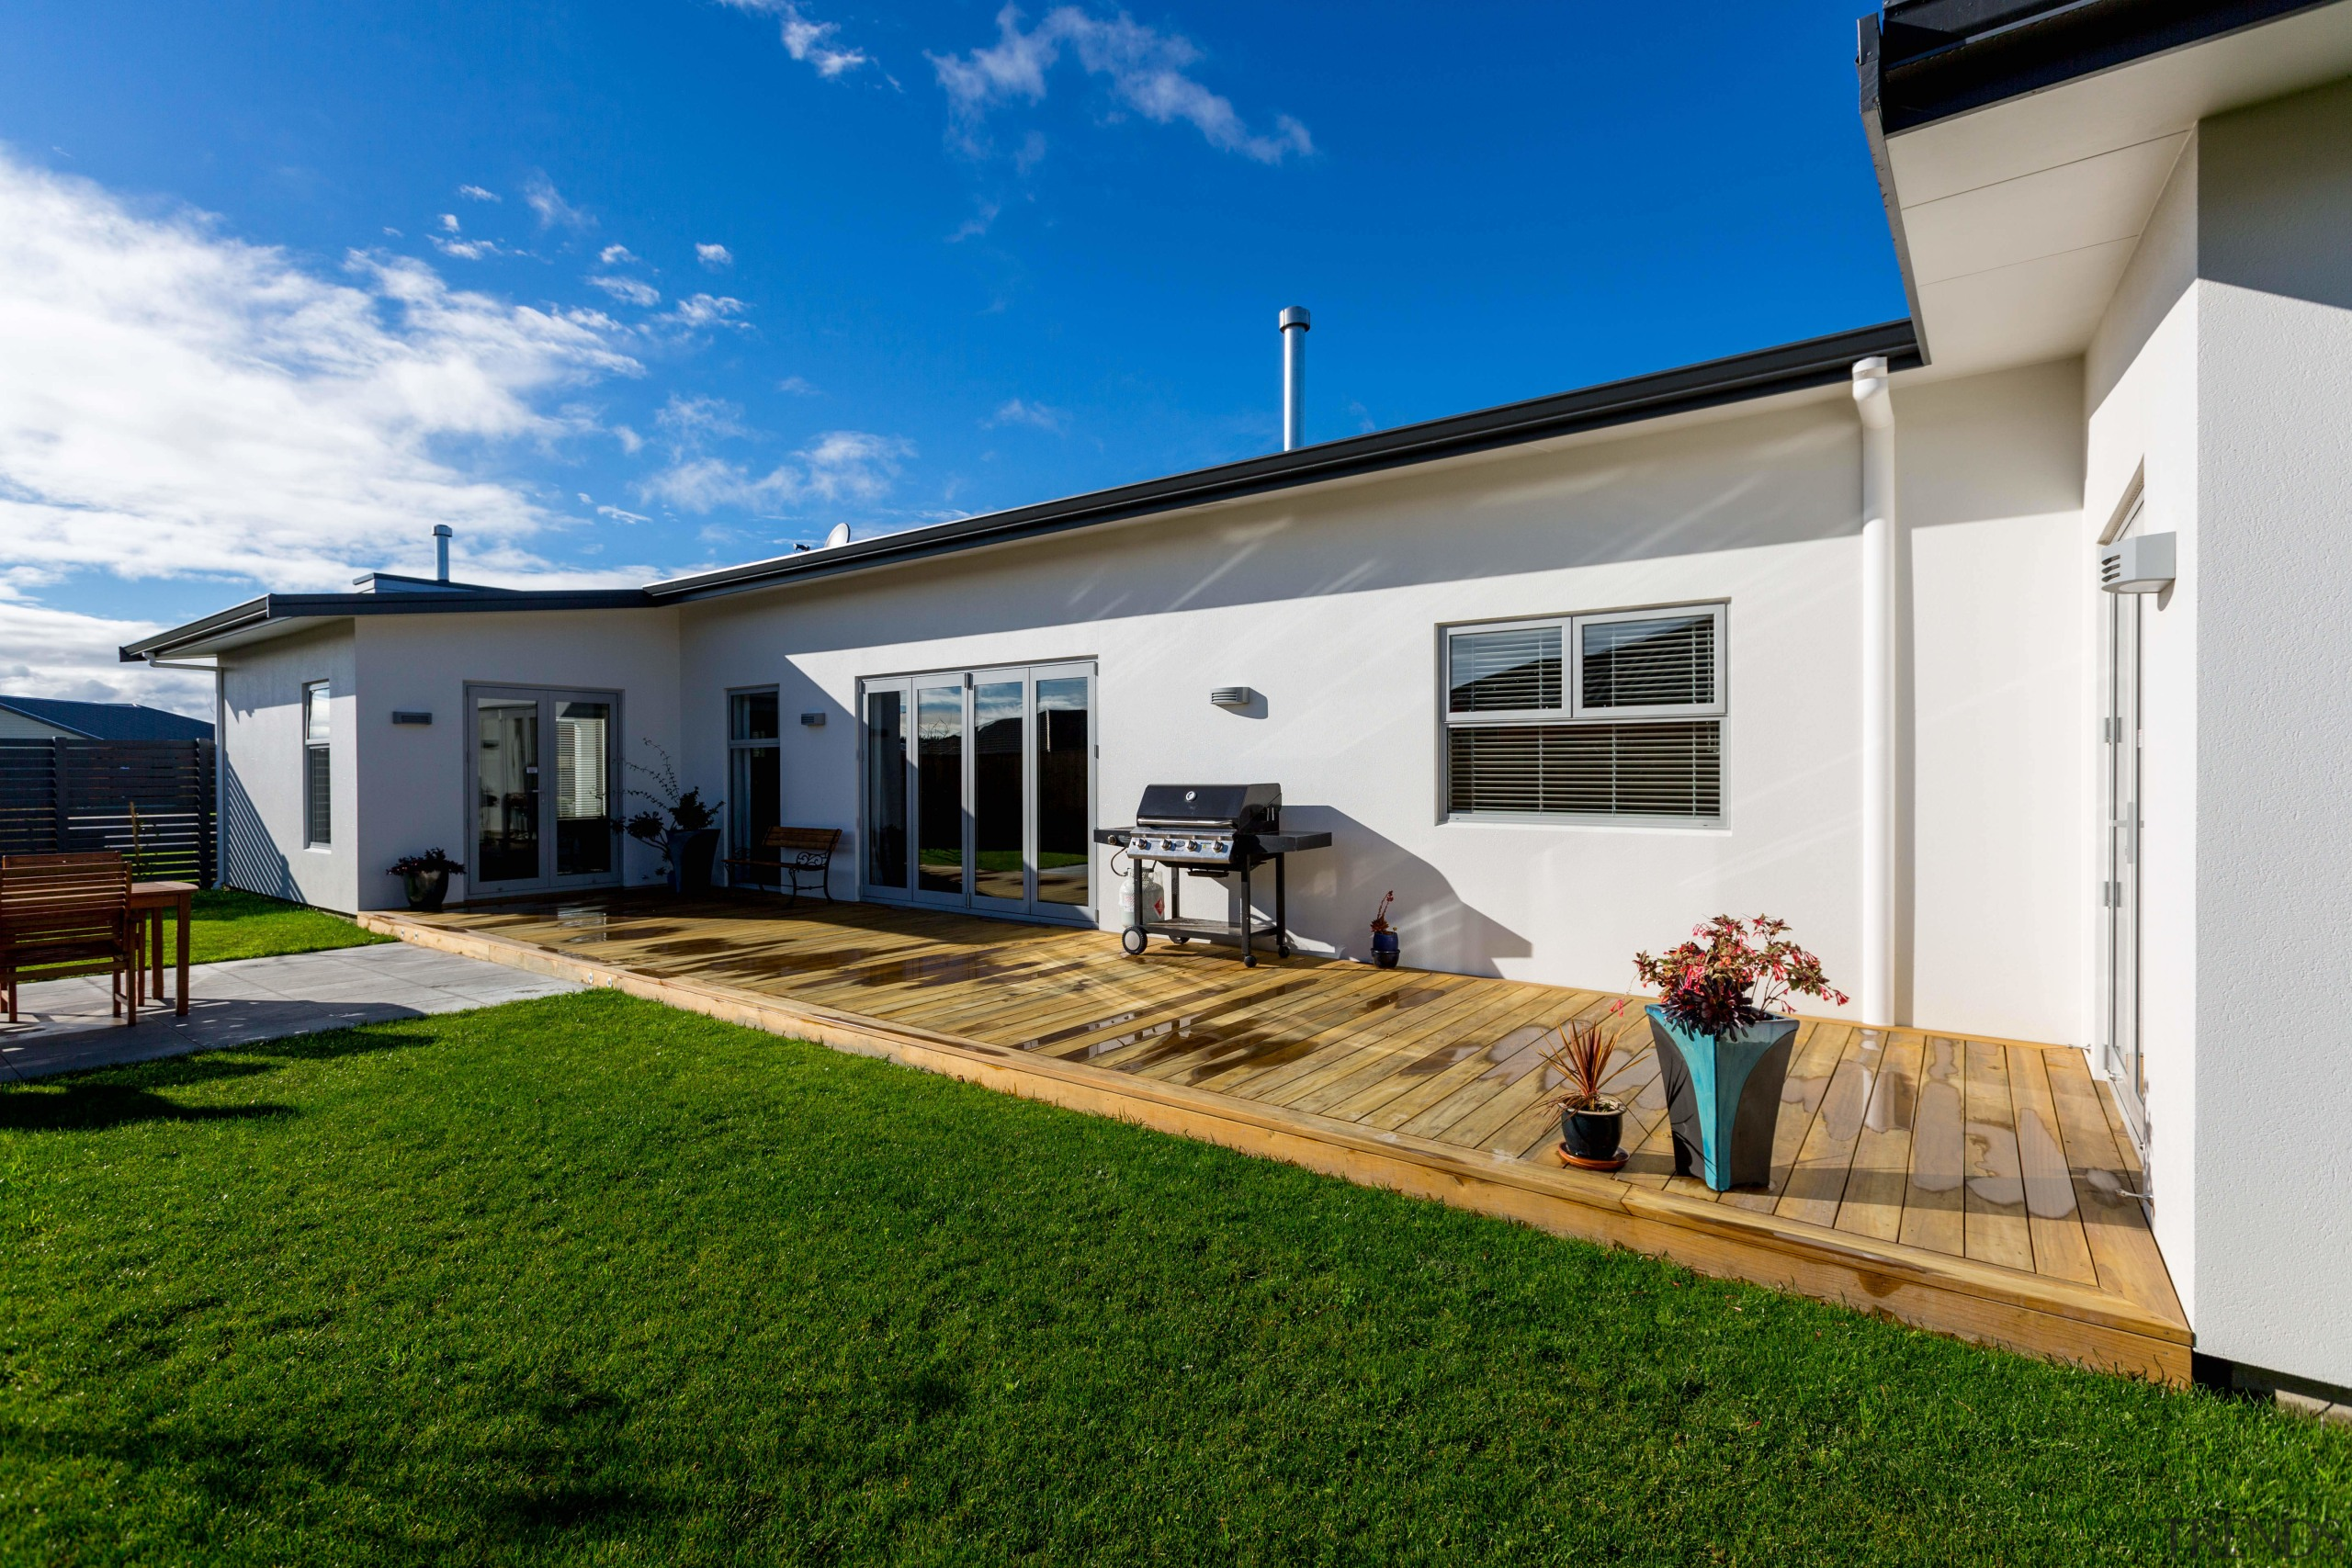 Designed and built by Fowler Homes Manawatu, this architecture, estate, facade, home, house, property, real estate, villa, window